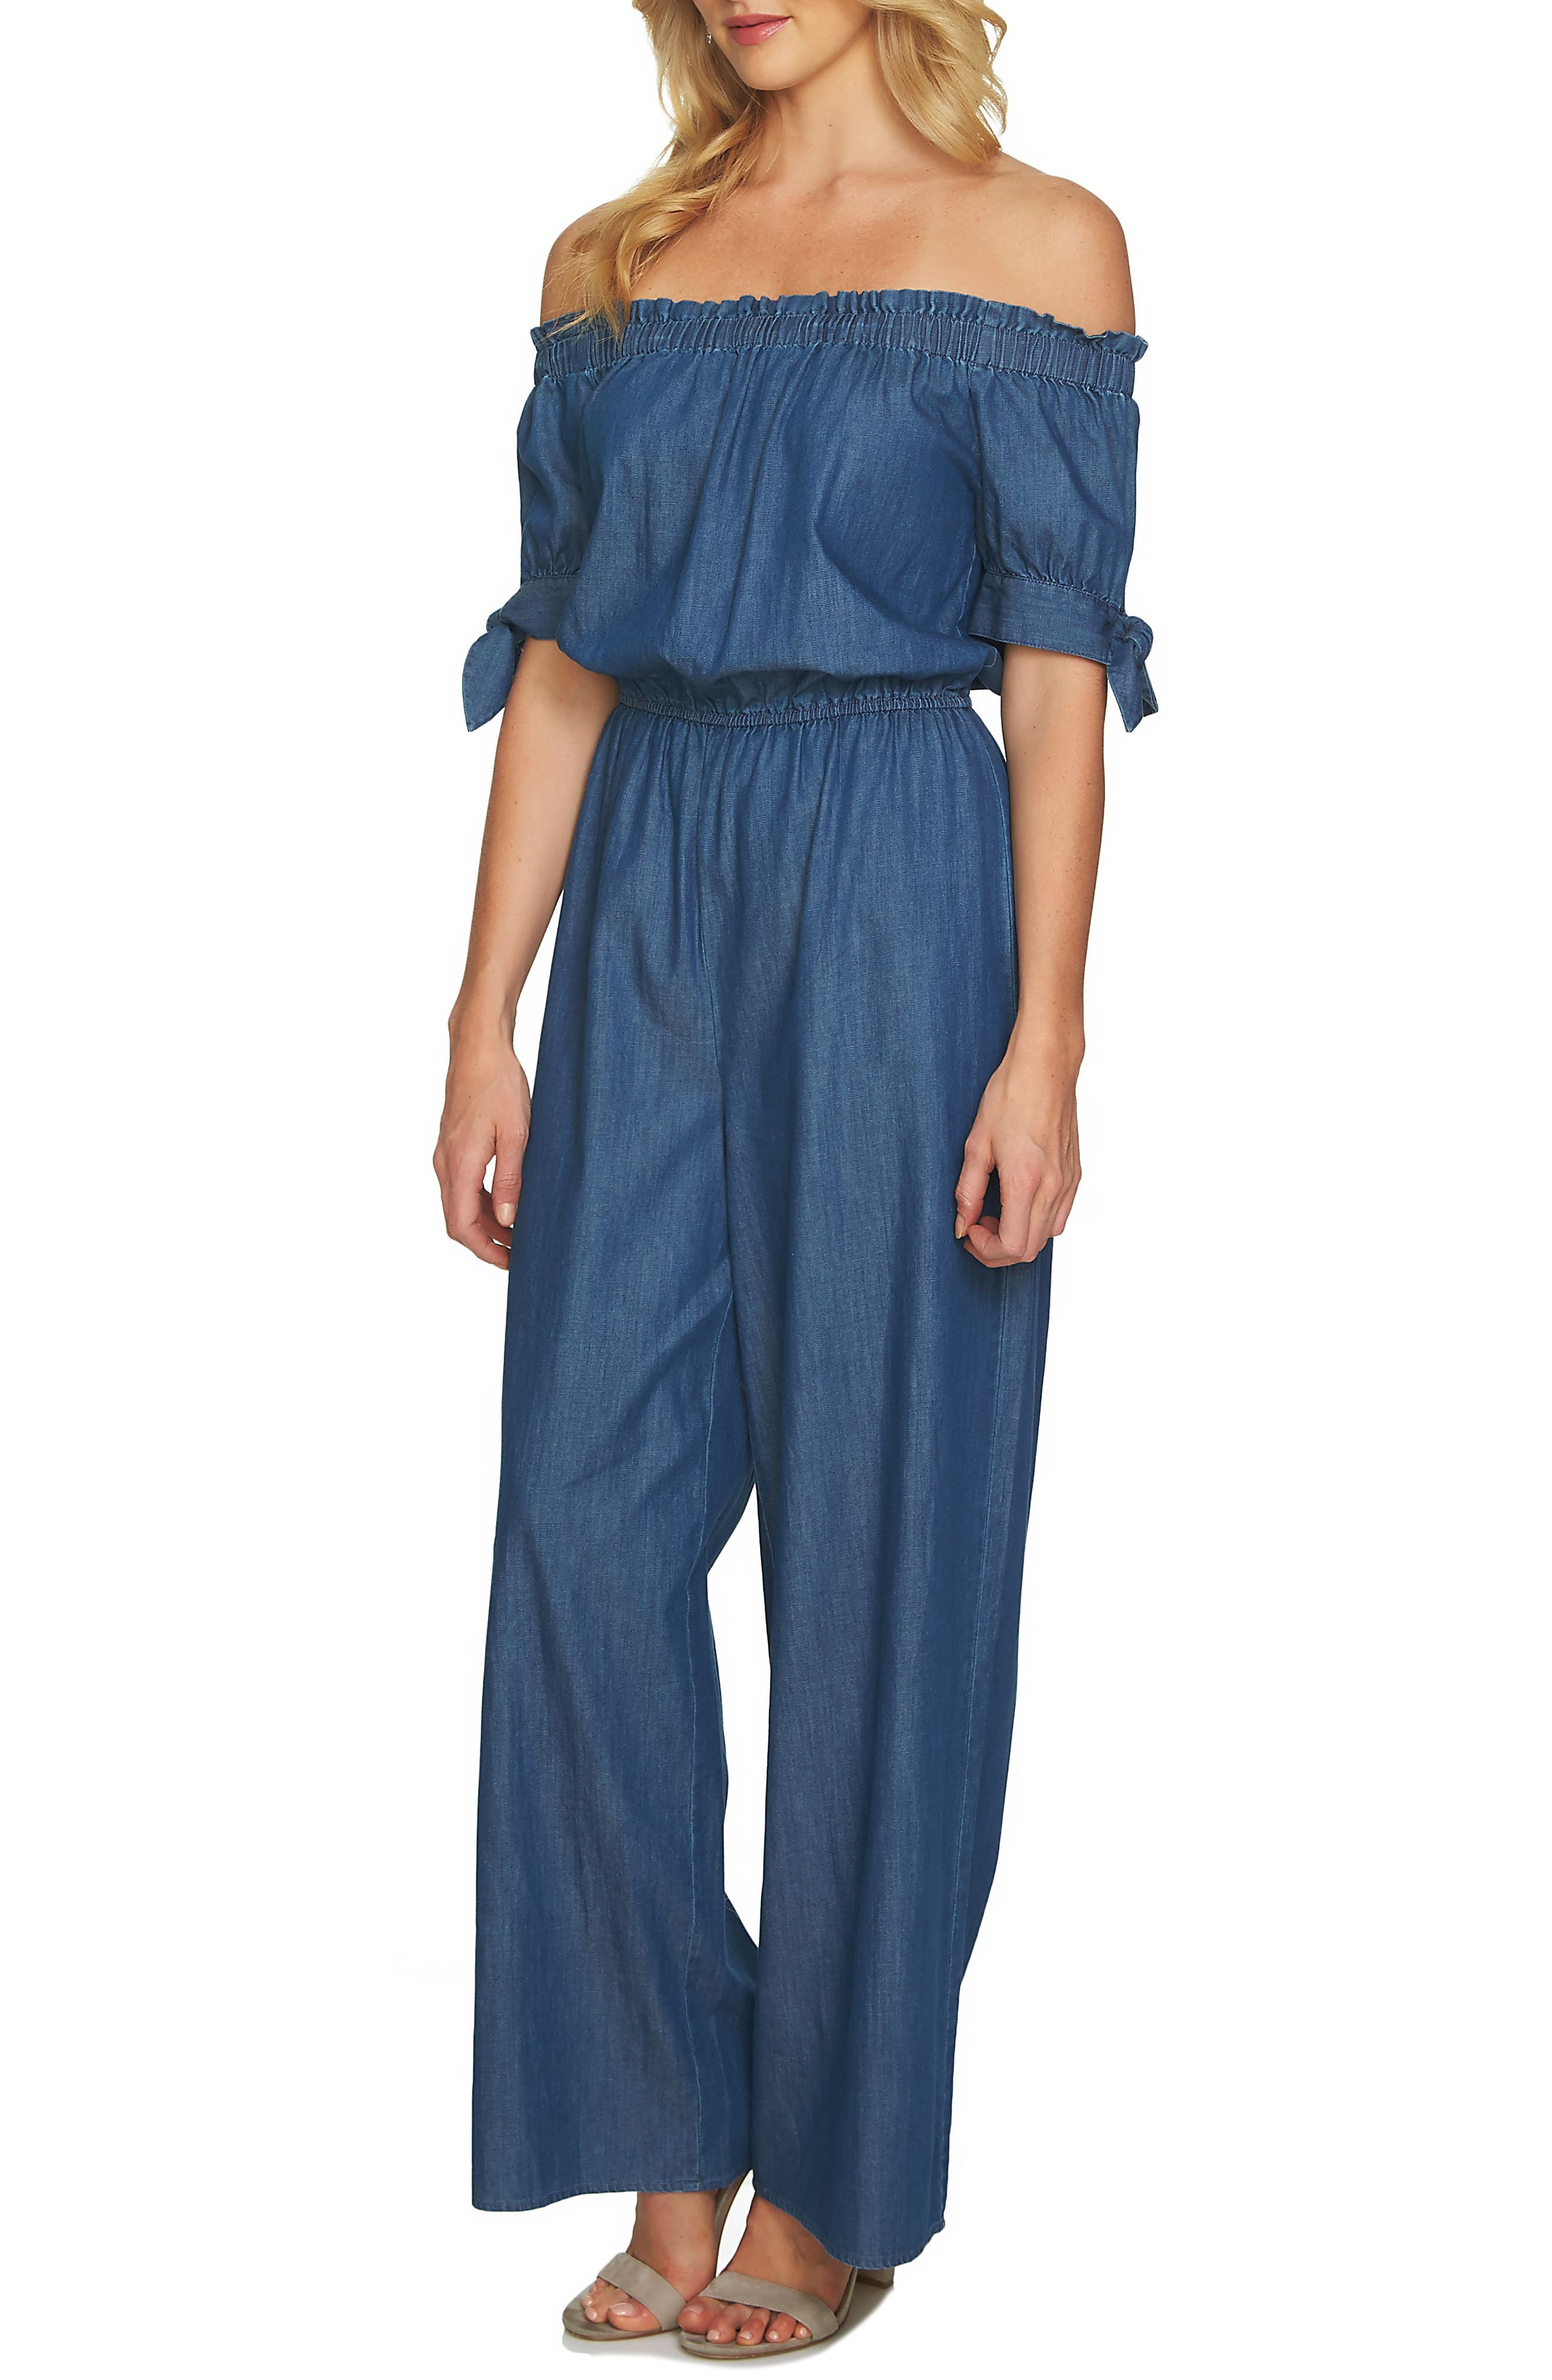 Off the Shoulder Wide Leg Jumpsuit,                             Main thumbnail 1, color,                             422